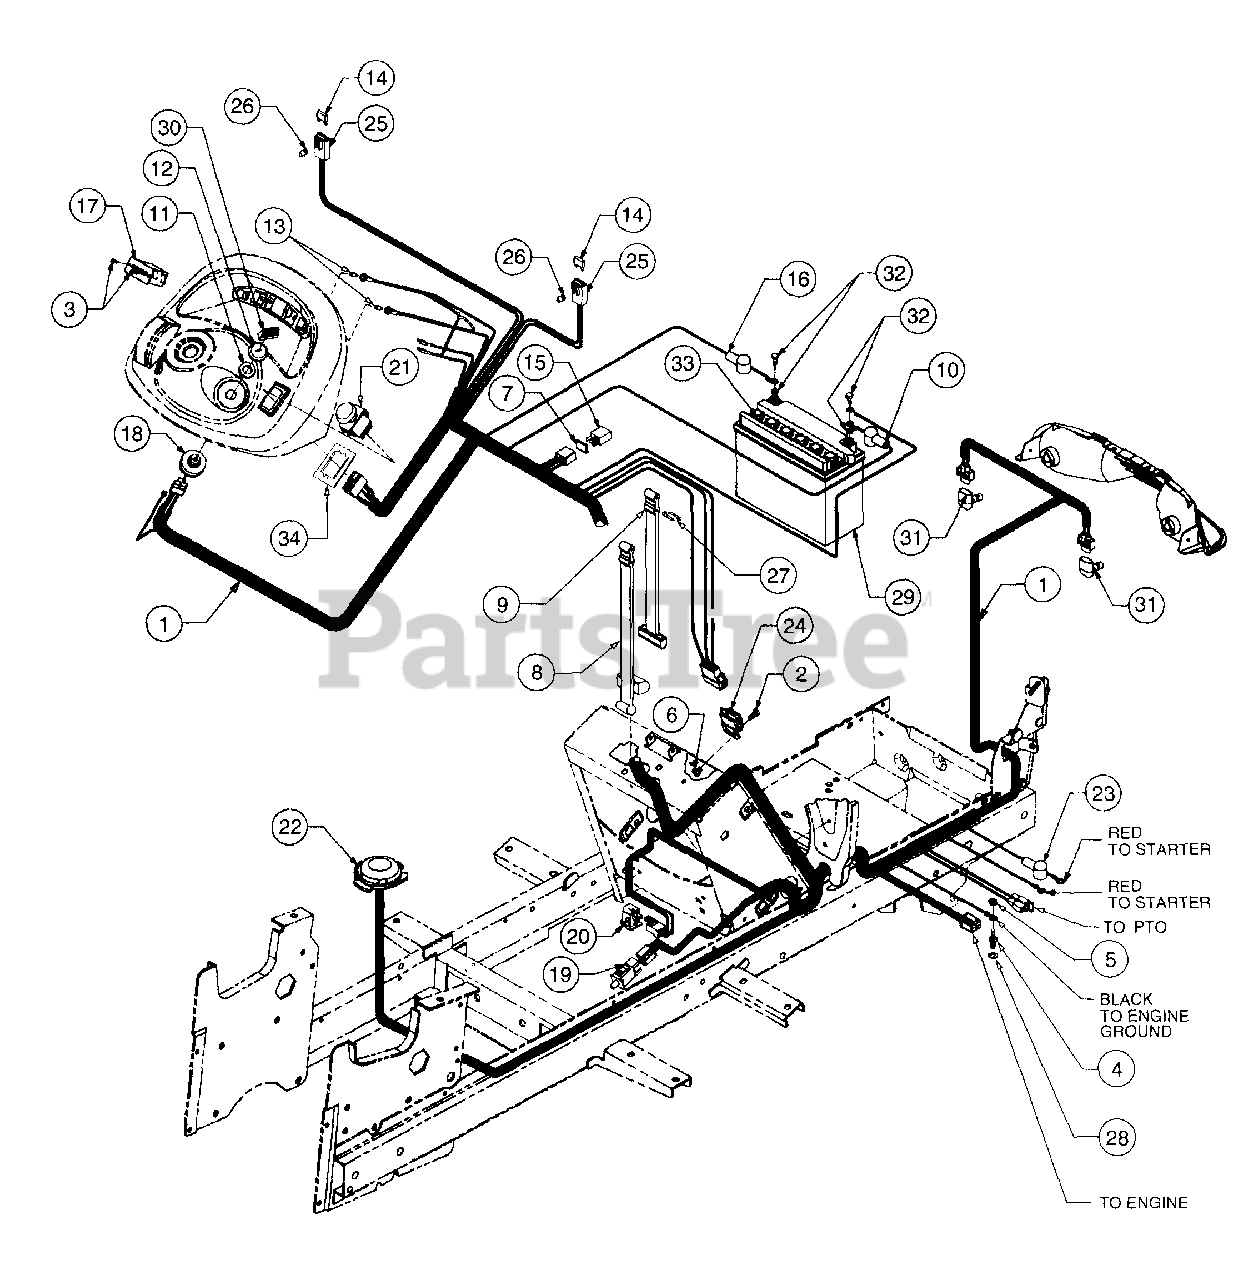 Cub Cadet 2185 Wiring Diagram from www.partstree.com